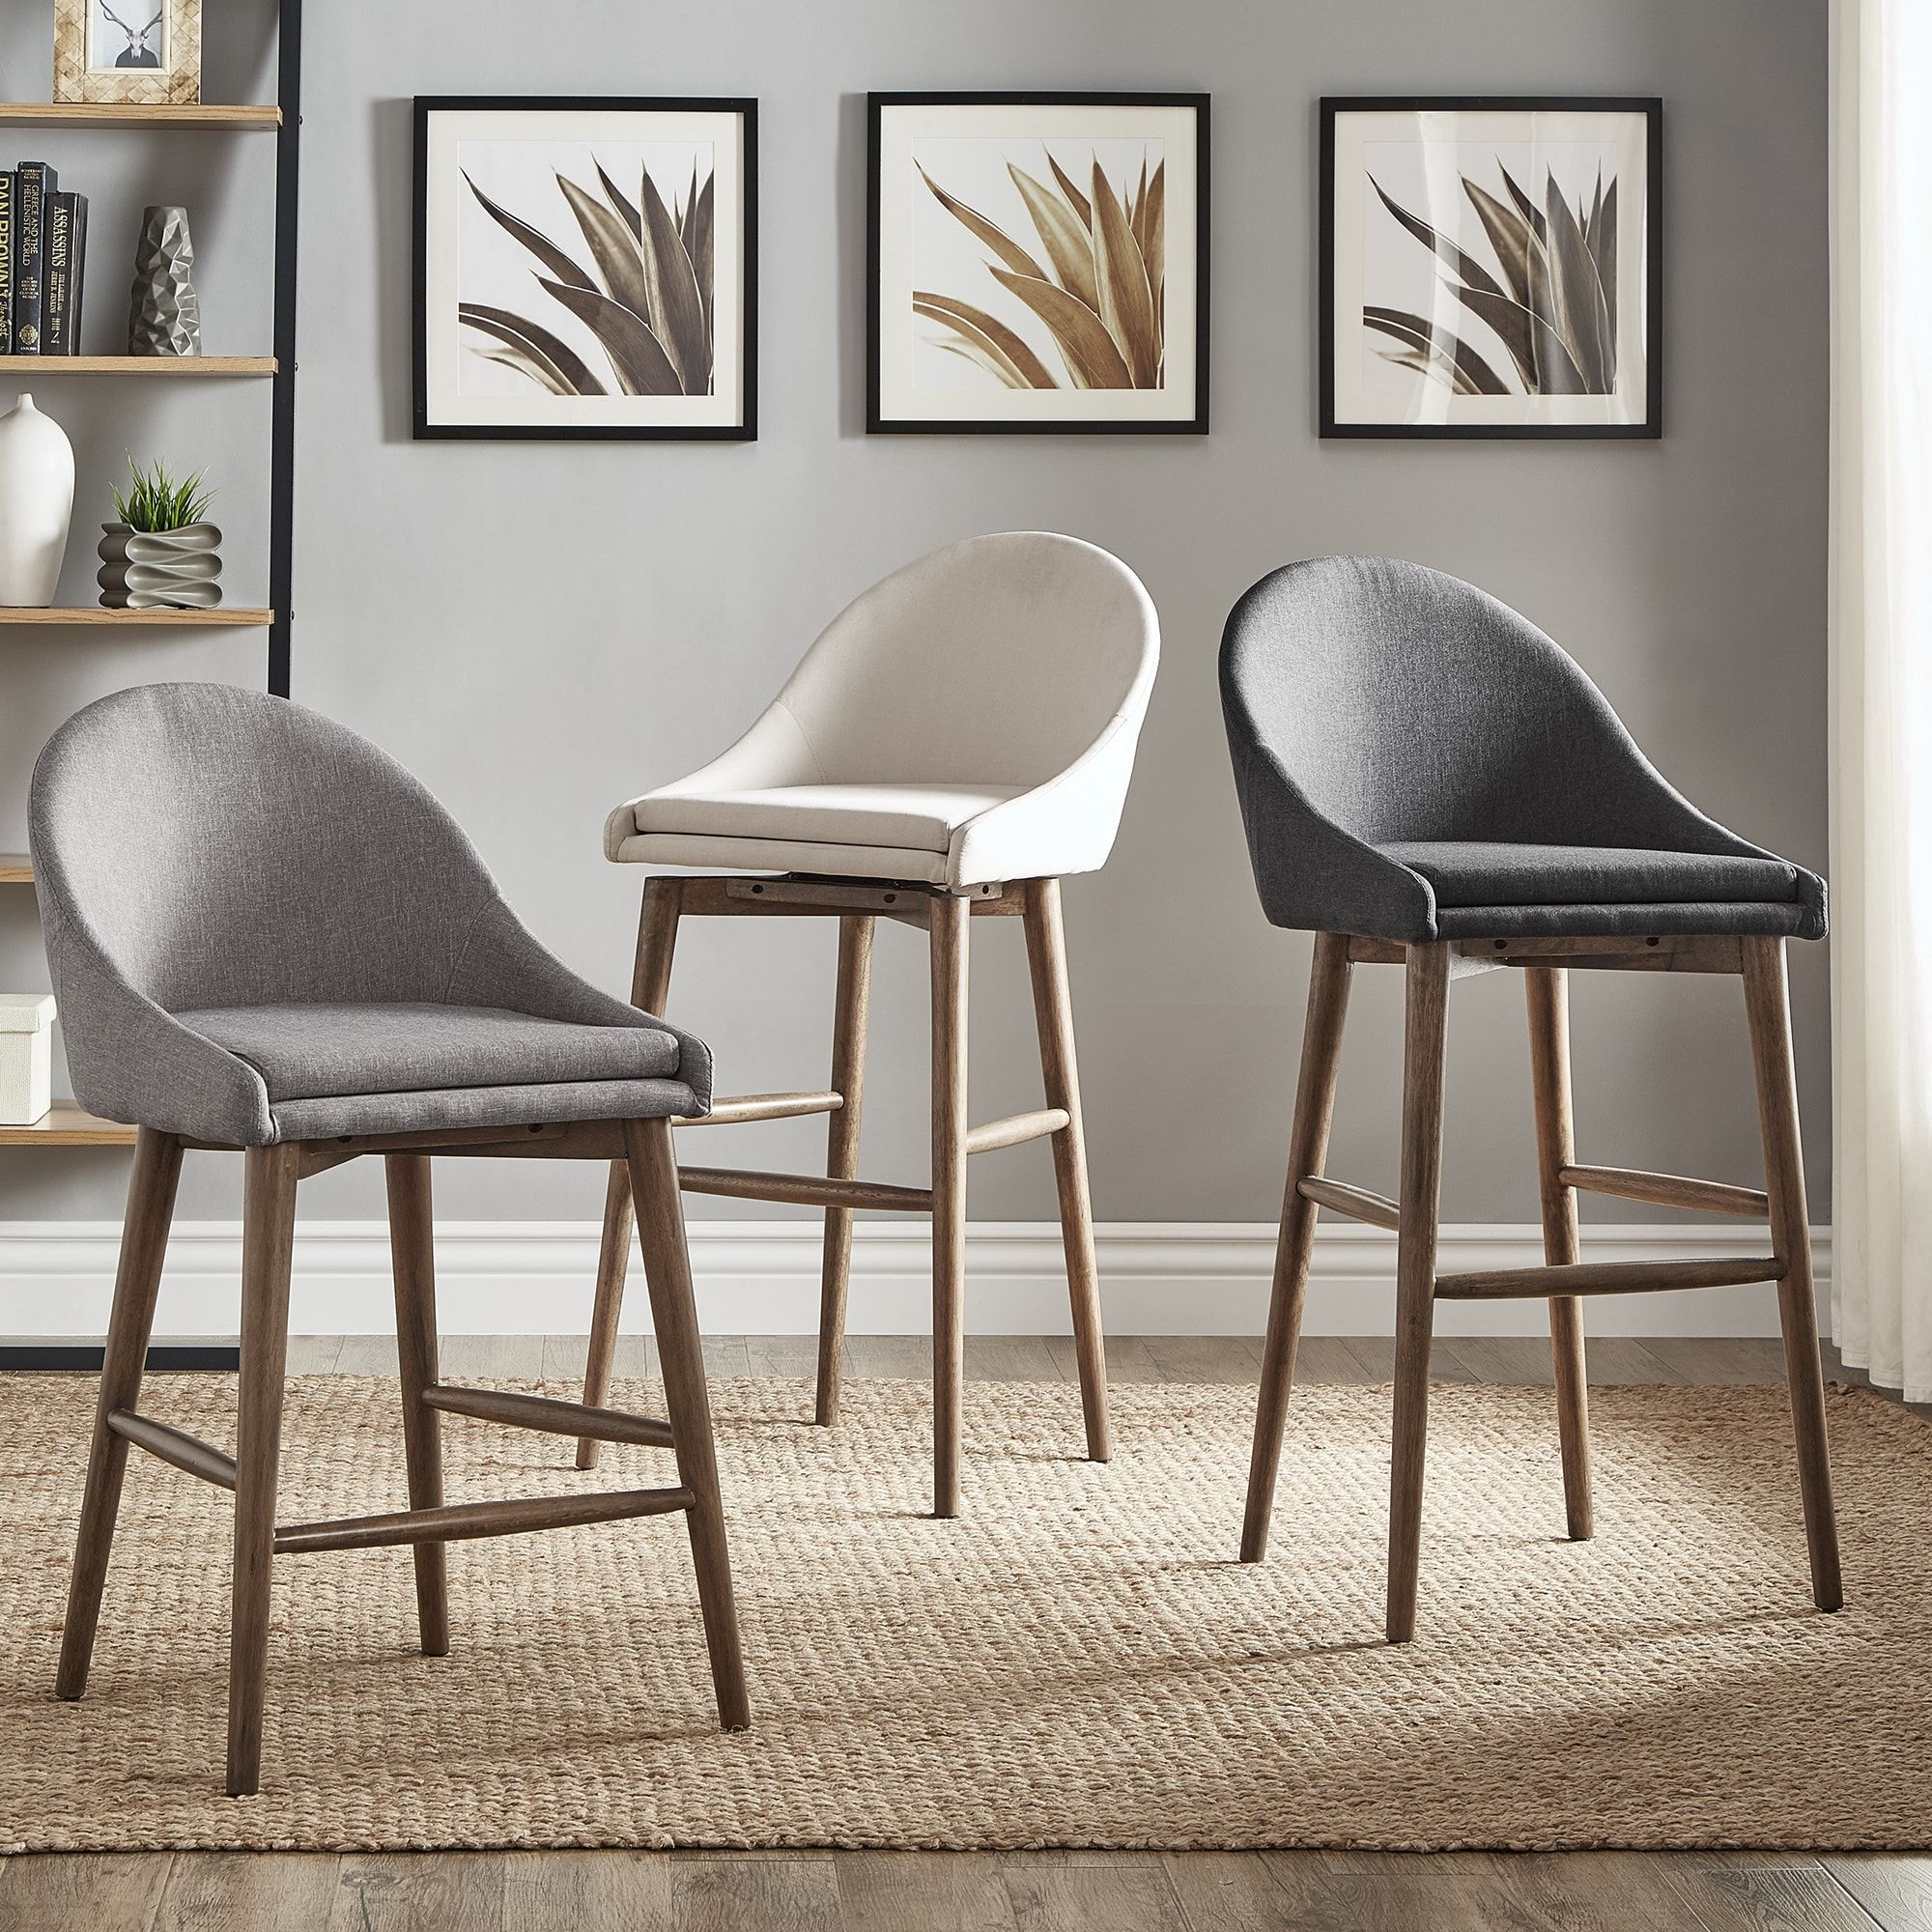 Overstock Com Online Shopping Bedding Furniture Electronics Jewelry Clothing More Mid Century Modern Wood Dining Room Bar Mid Century Bar Stools